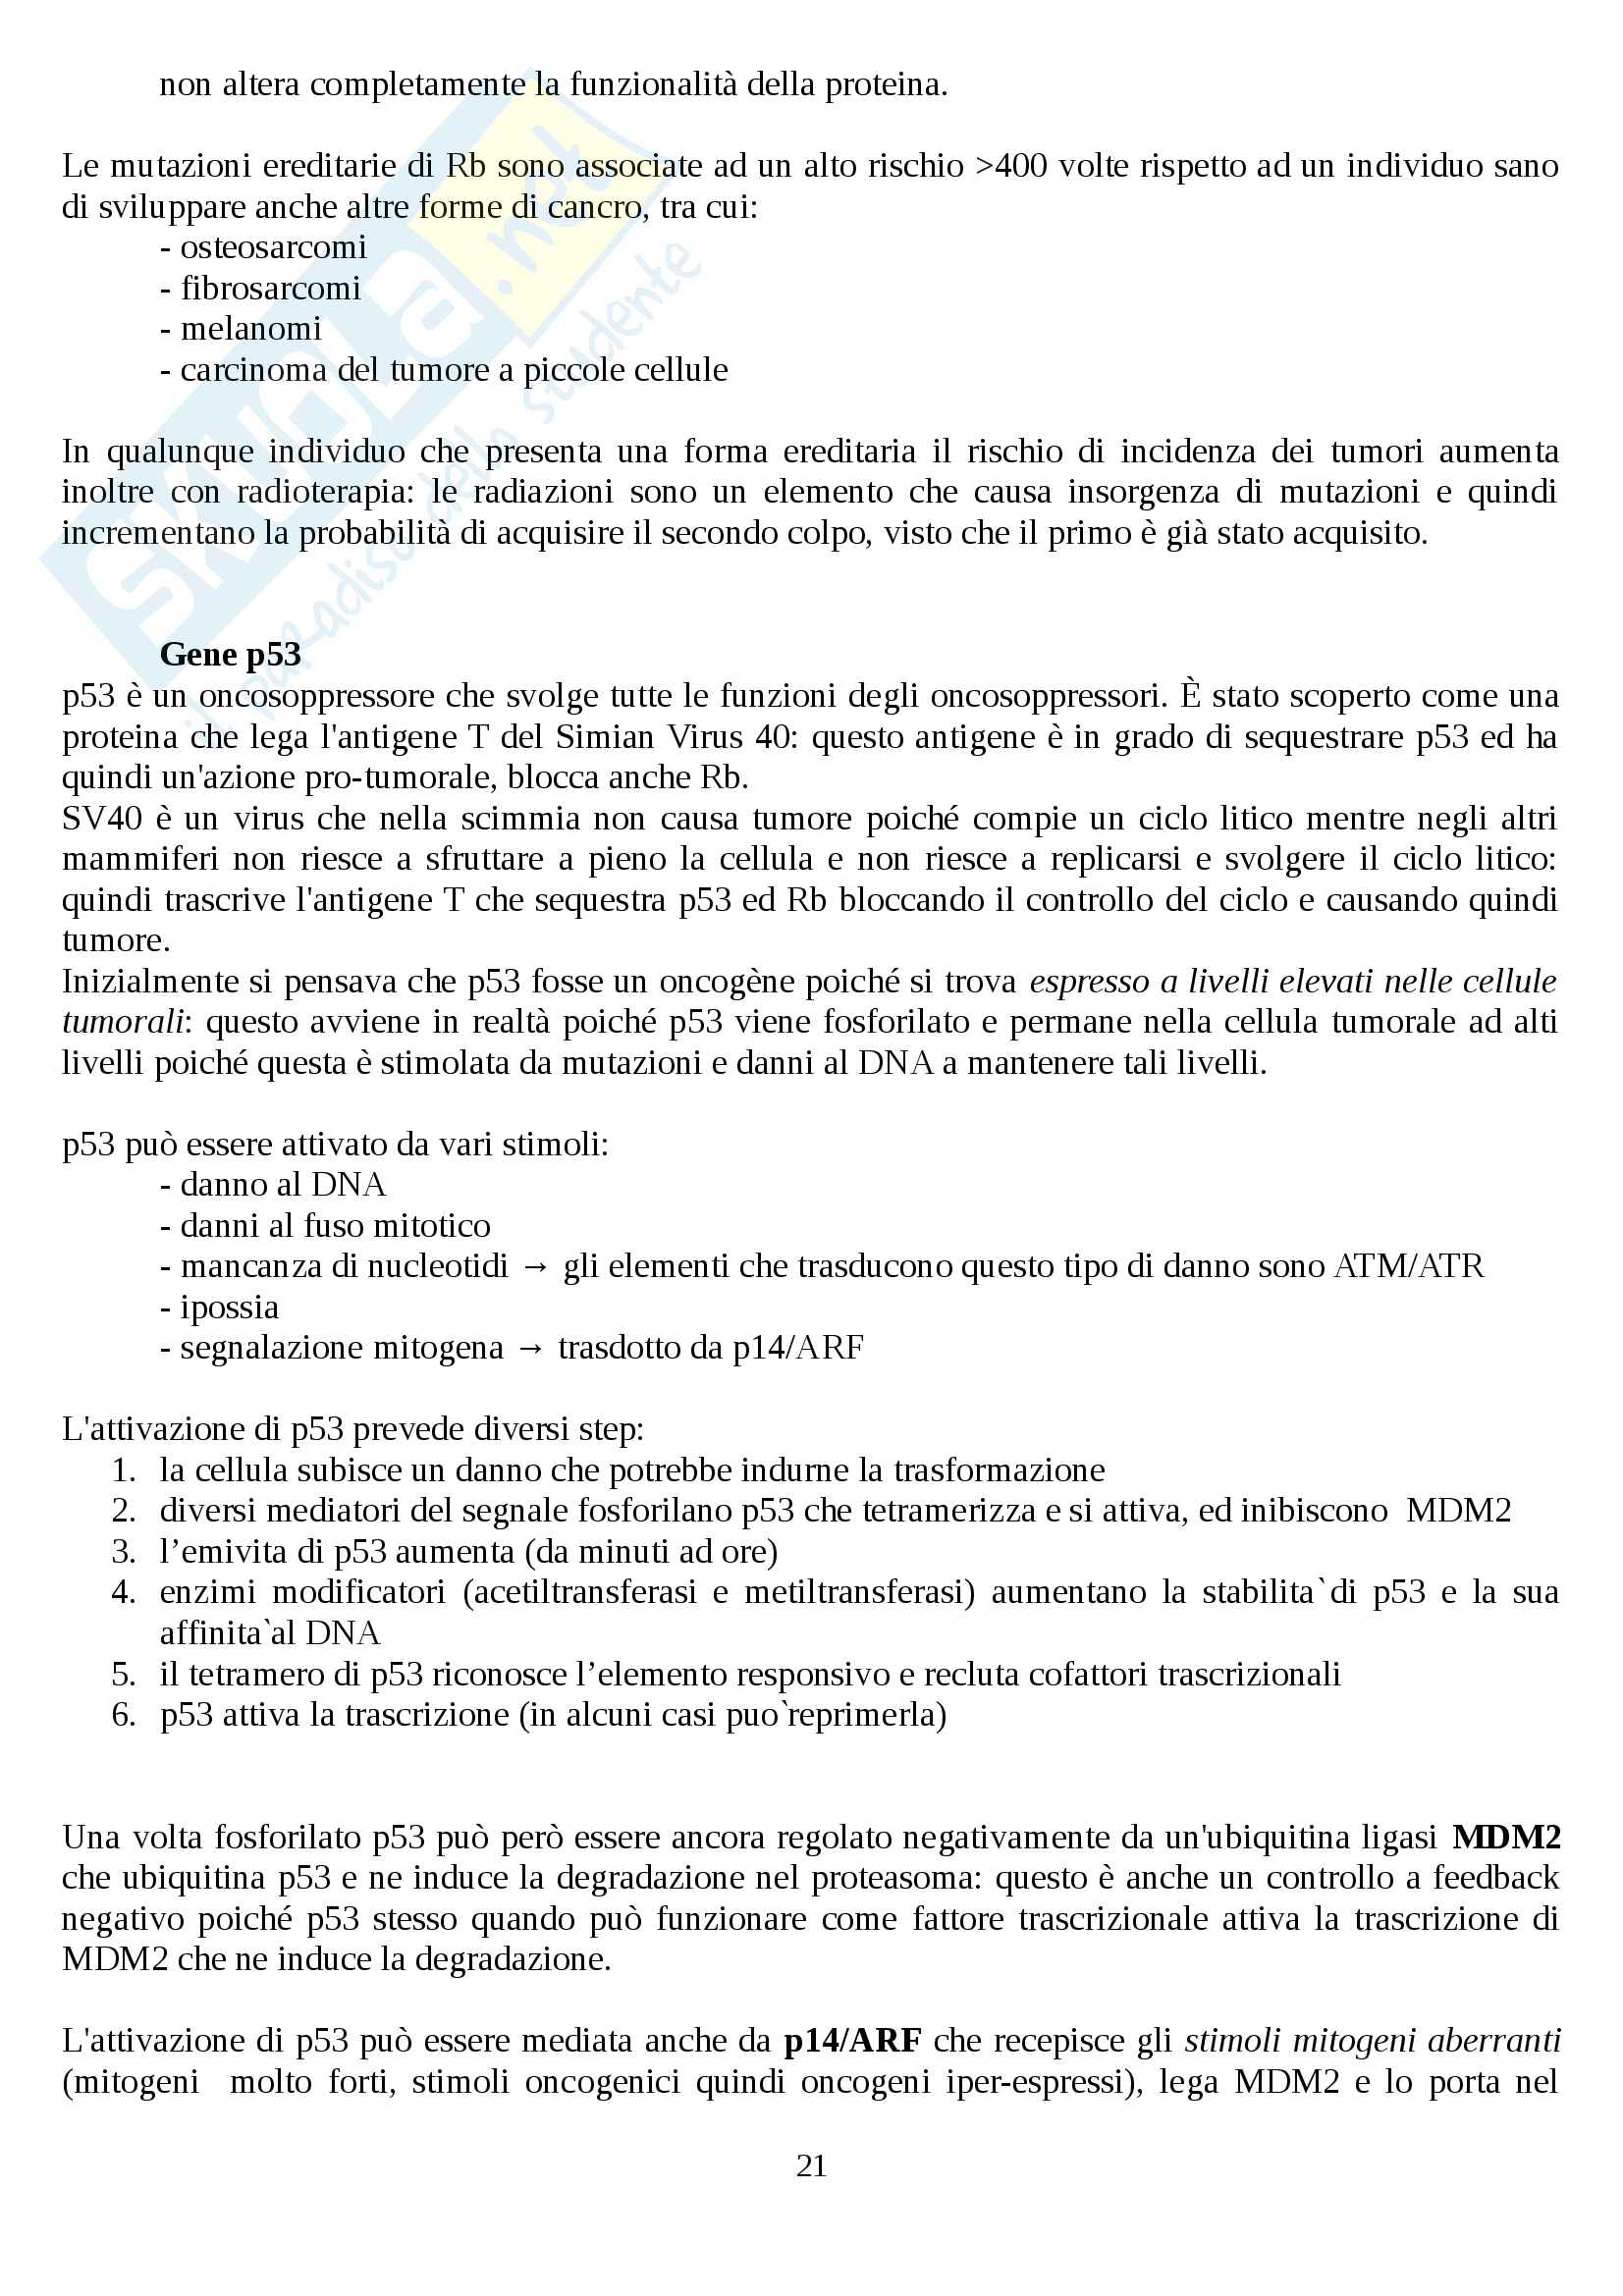 Oncologia generale Pag. 21